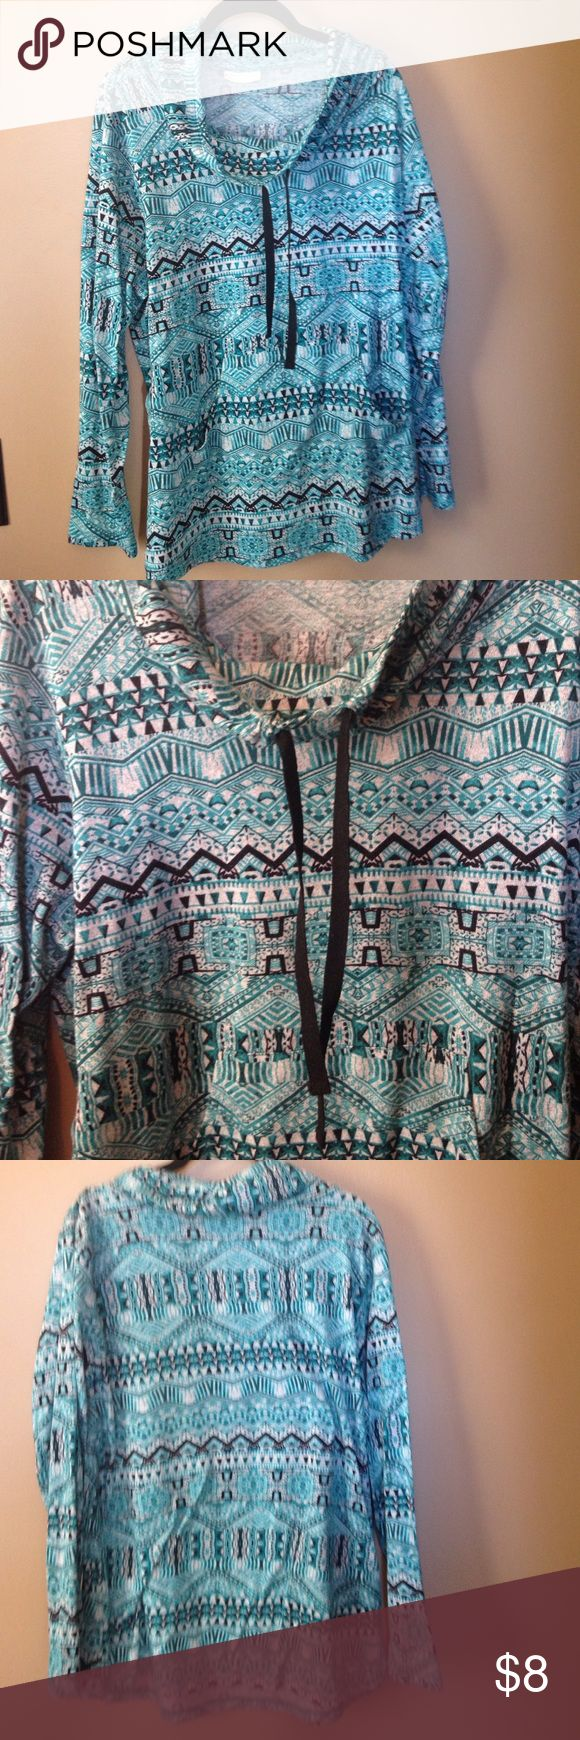 Plus size Cowl Neck Aztec Long Sleeved top 2x Cute, thin material, but cozy!  Pretty colors with nice comfy long sleeves. Size 2x Sweaters Cowl & Turtlenecks